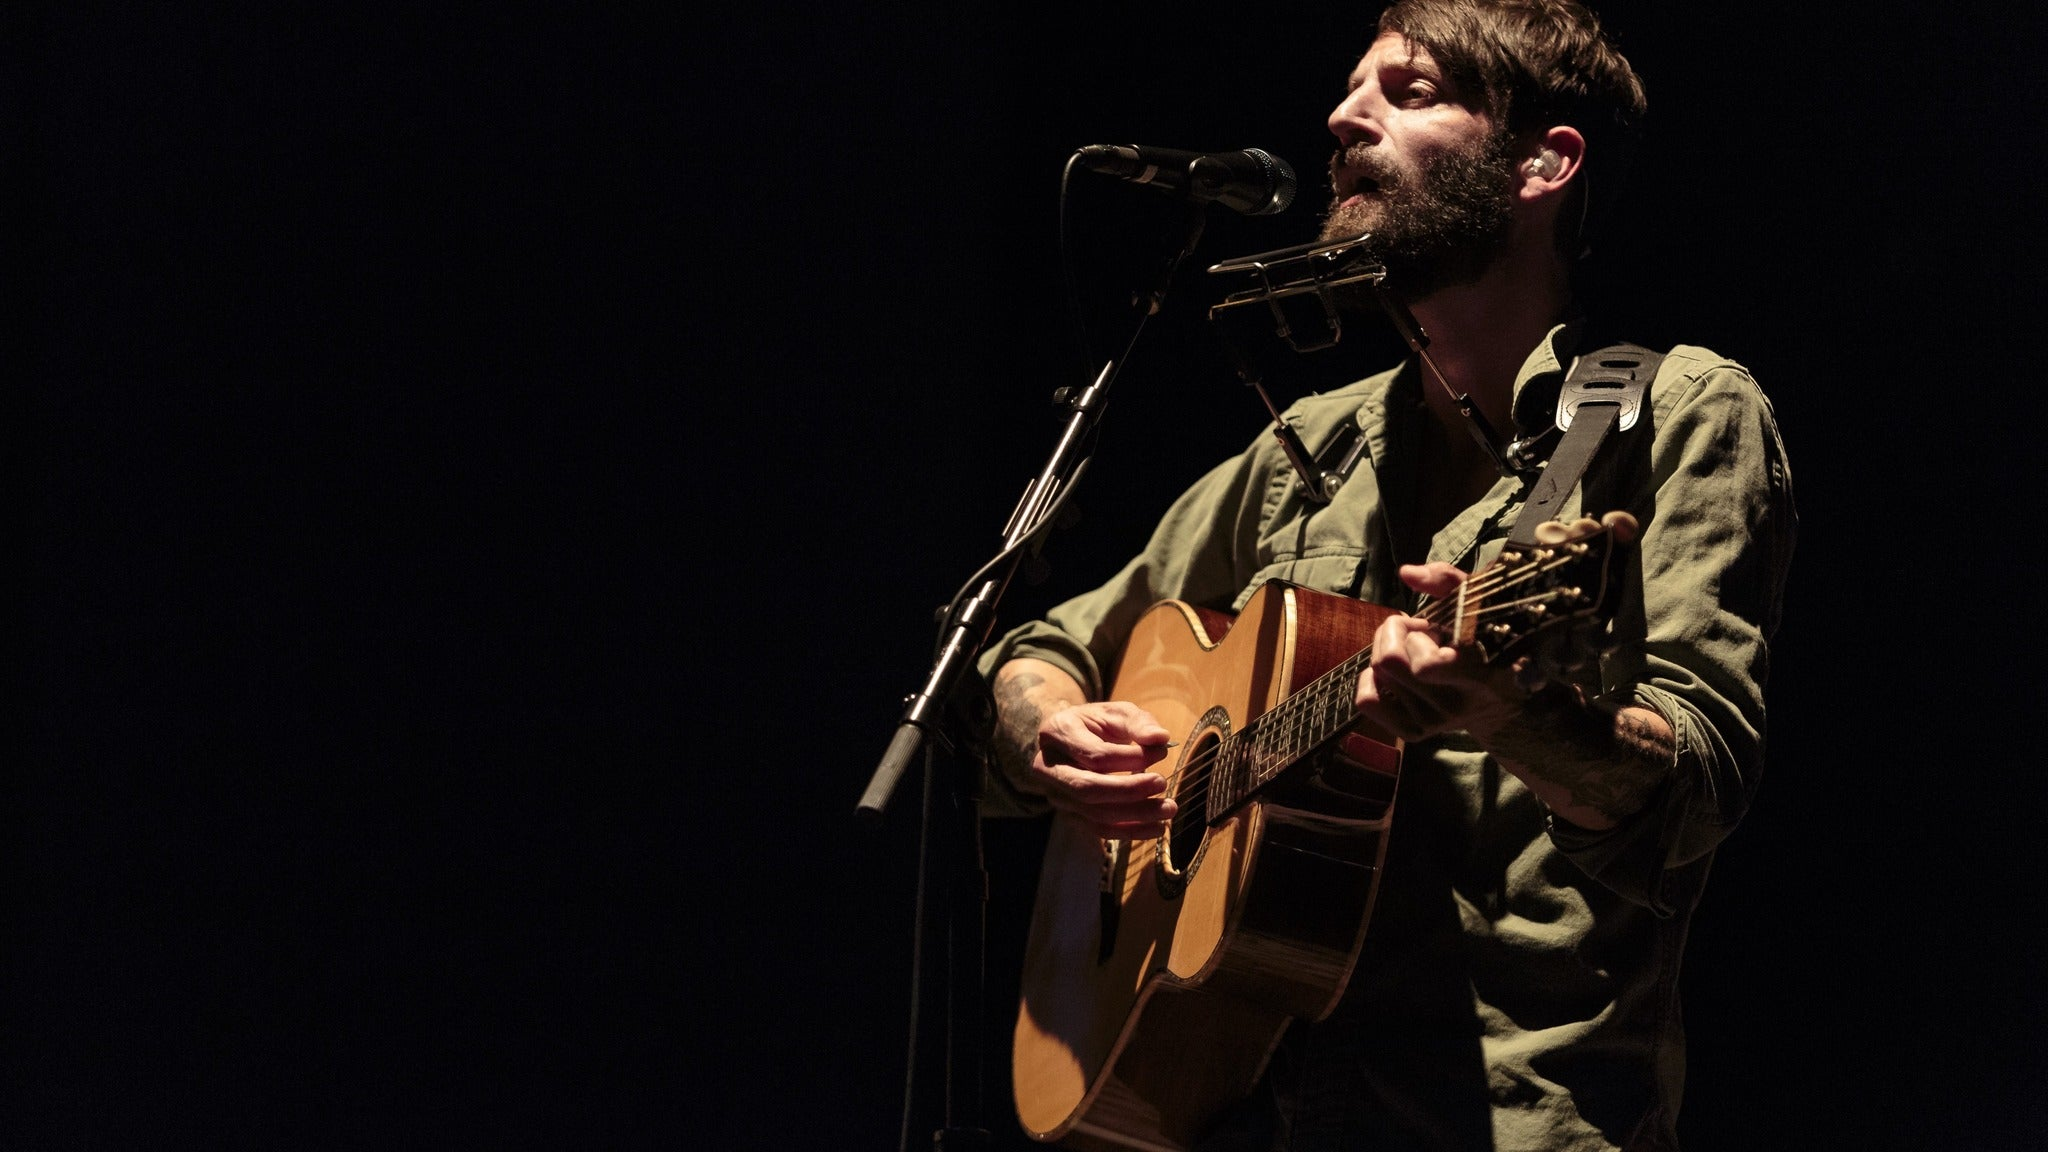 91.9 WFPK presents Ray LaMontagne: Just Passing Through